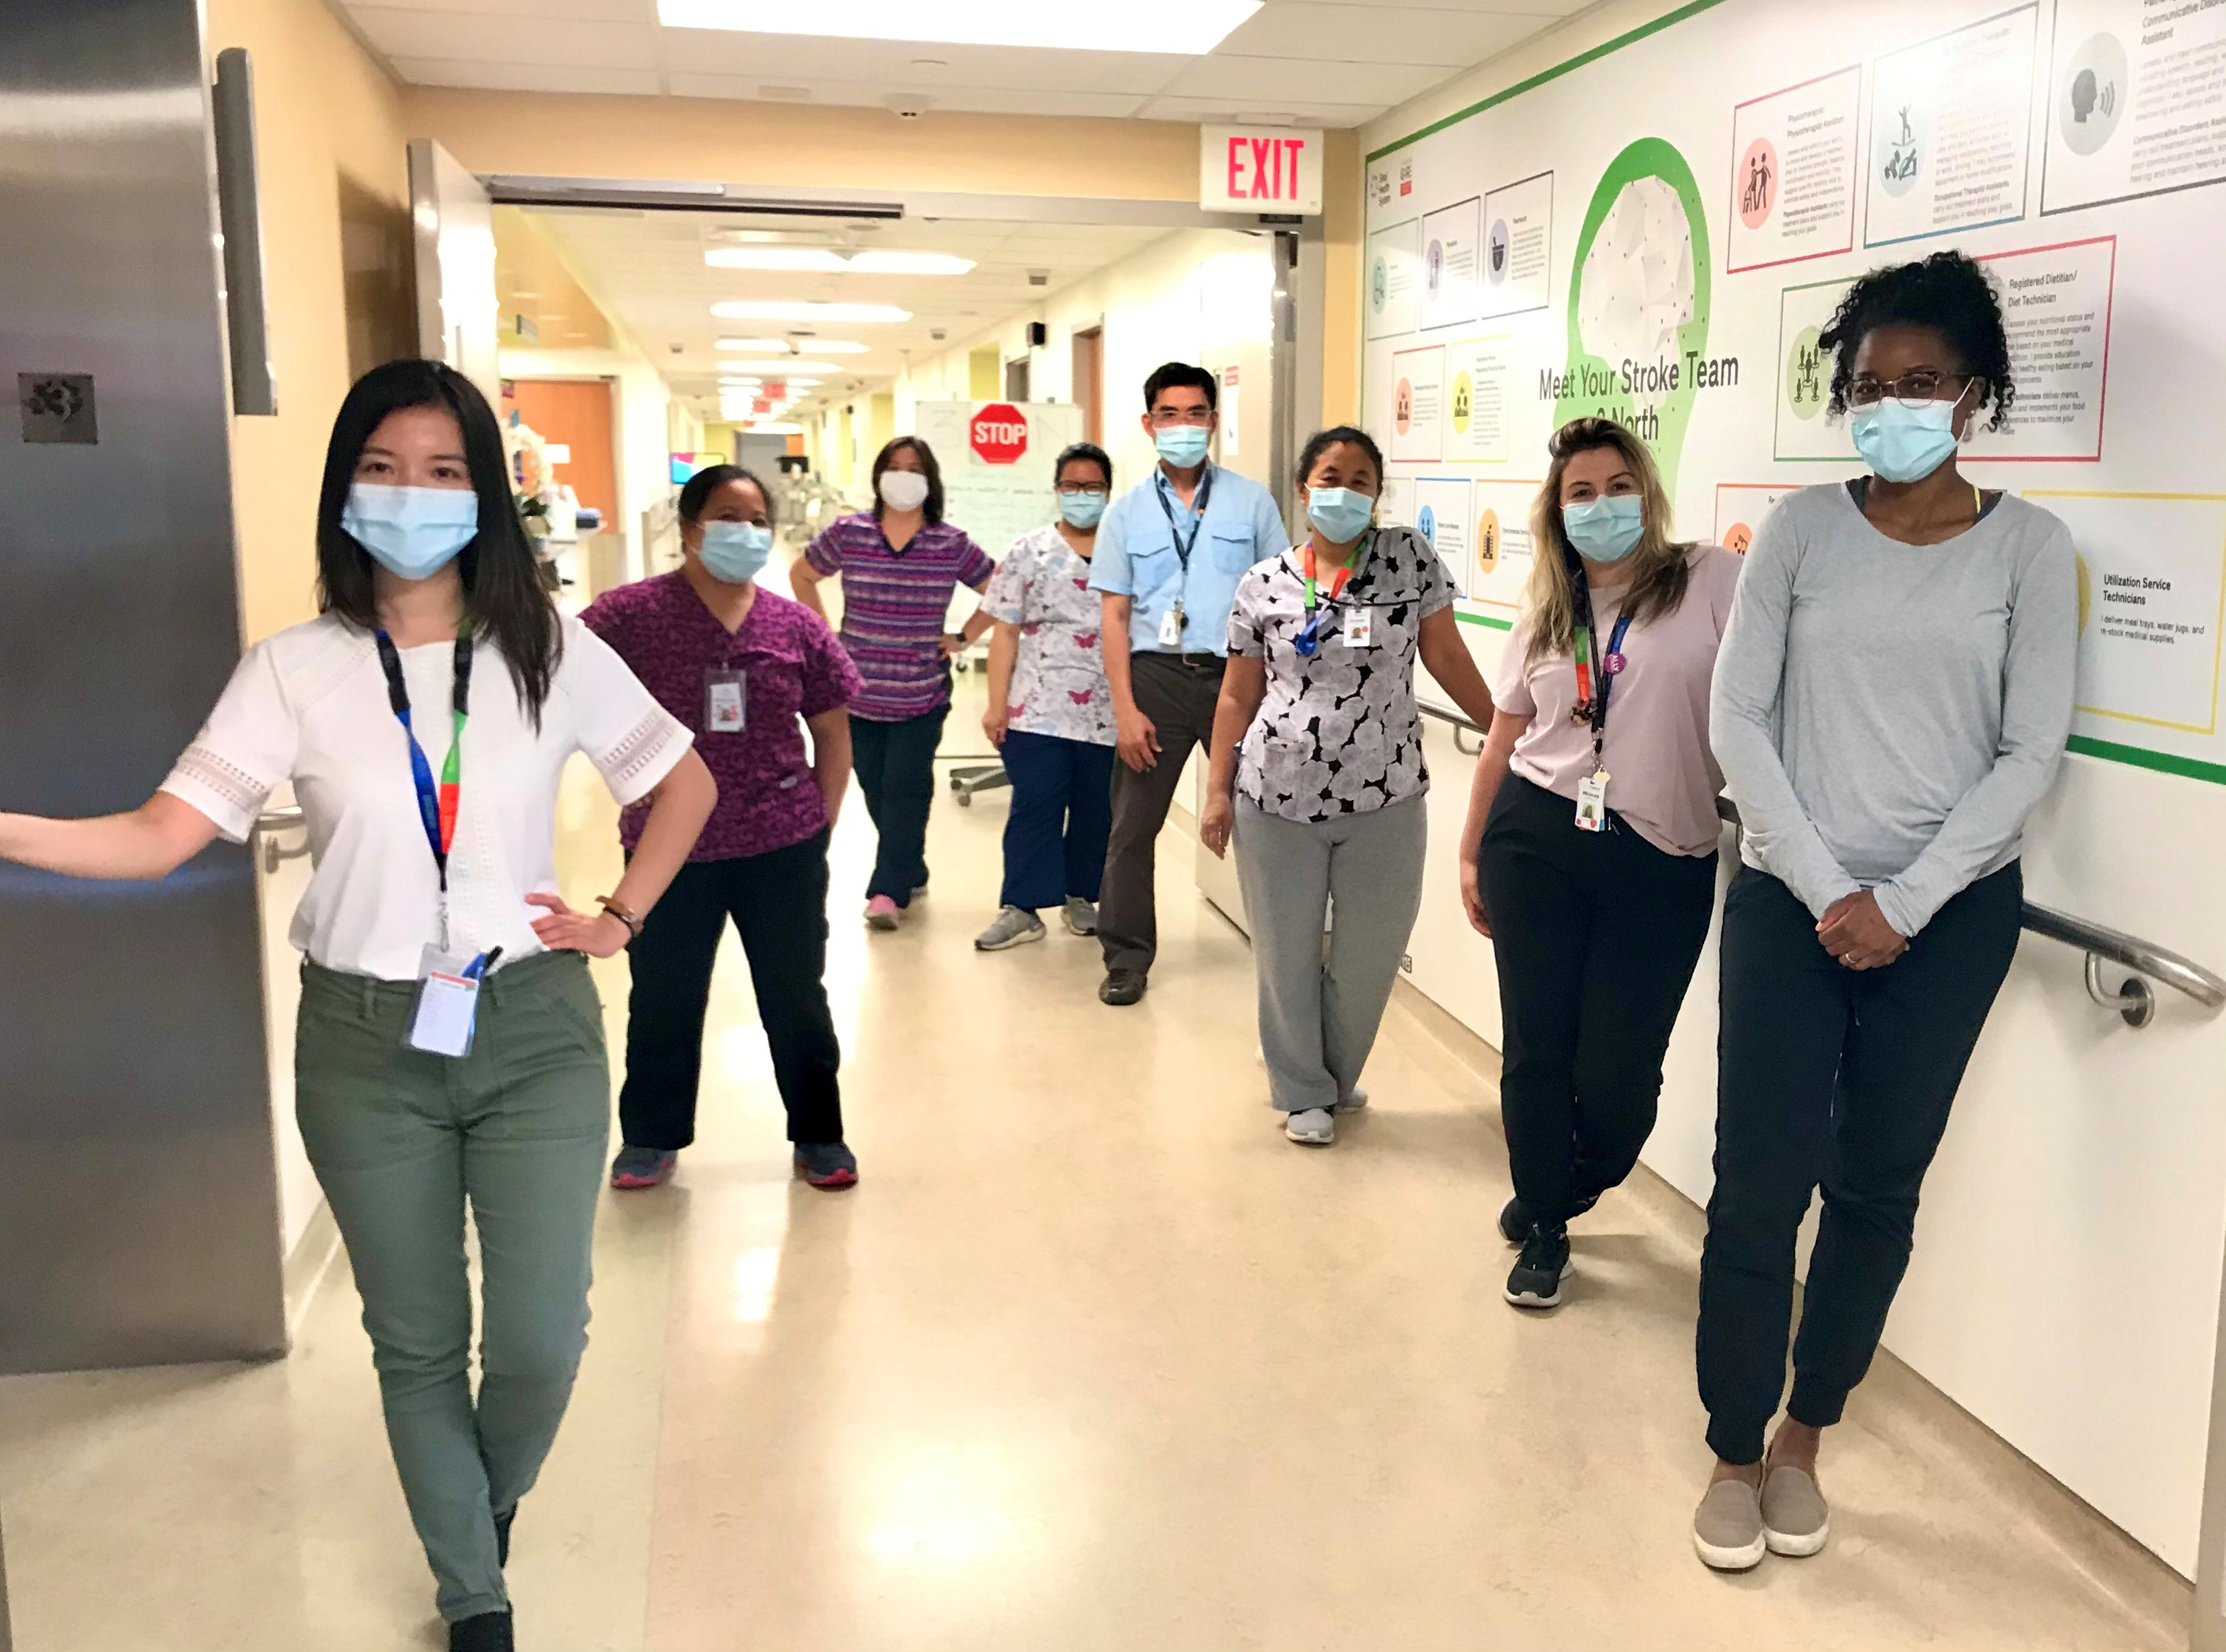 A group of health care workers standing in the hallway of a hospital. They are wearing masks and some are wearing scrubs. They are facing the camera